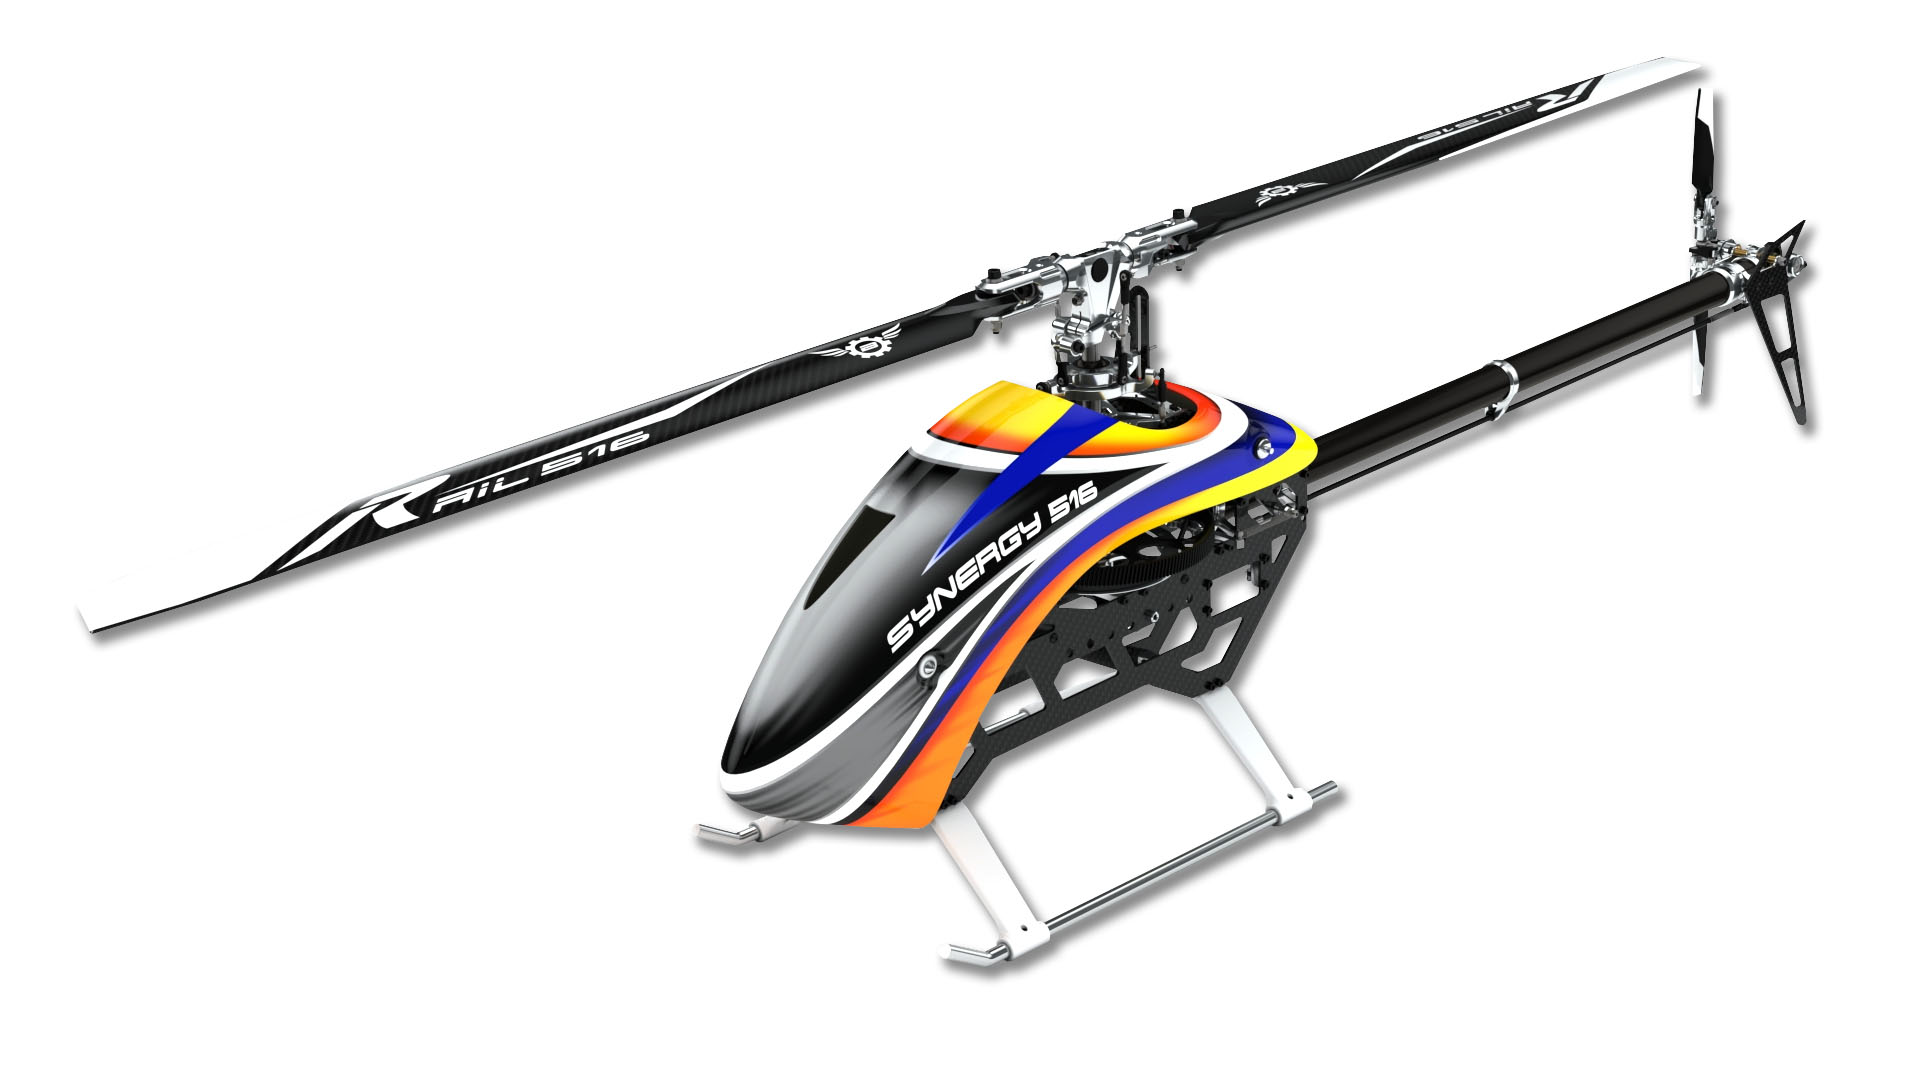 Synergy 516 Synergy R/C Helicopters